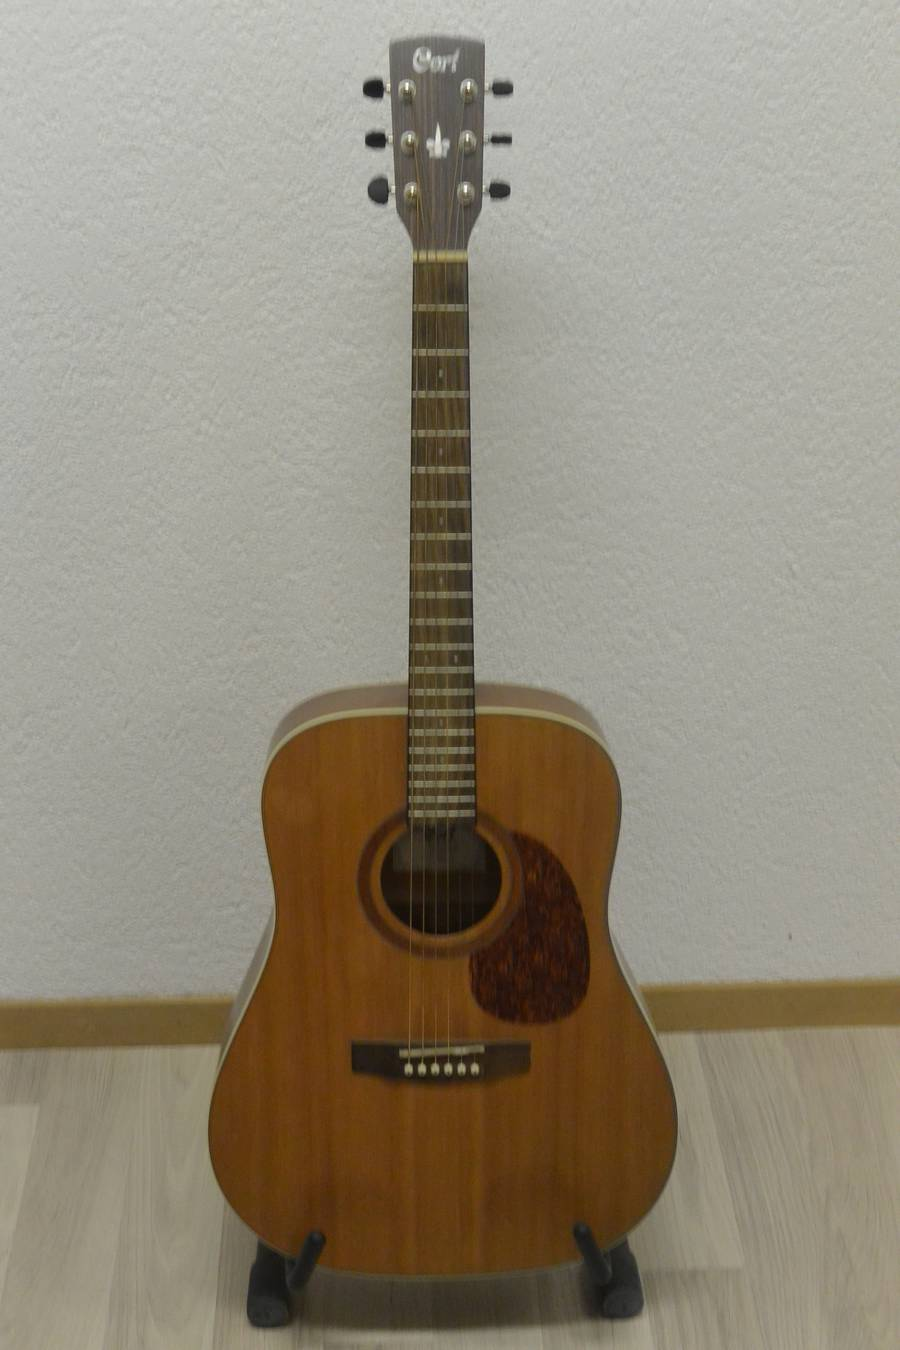 guitare acoustique cort Earth 100 frs 300.00